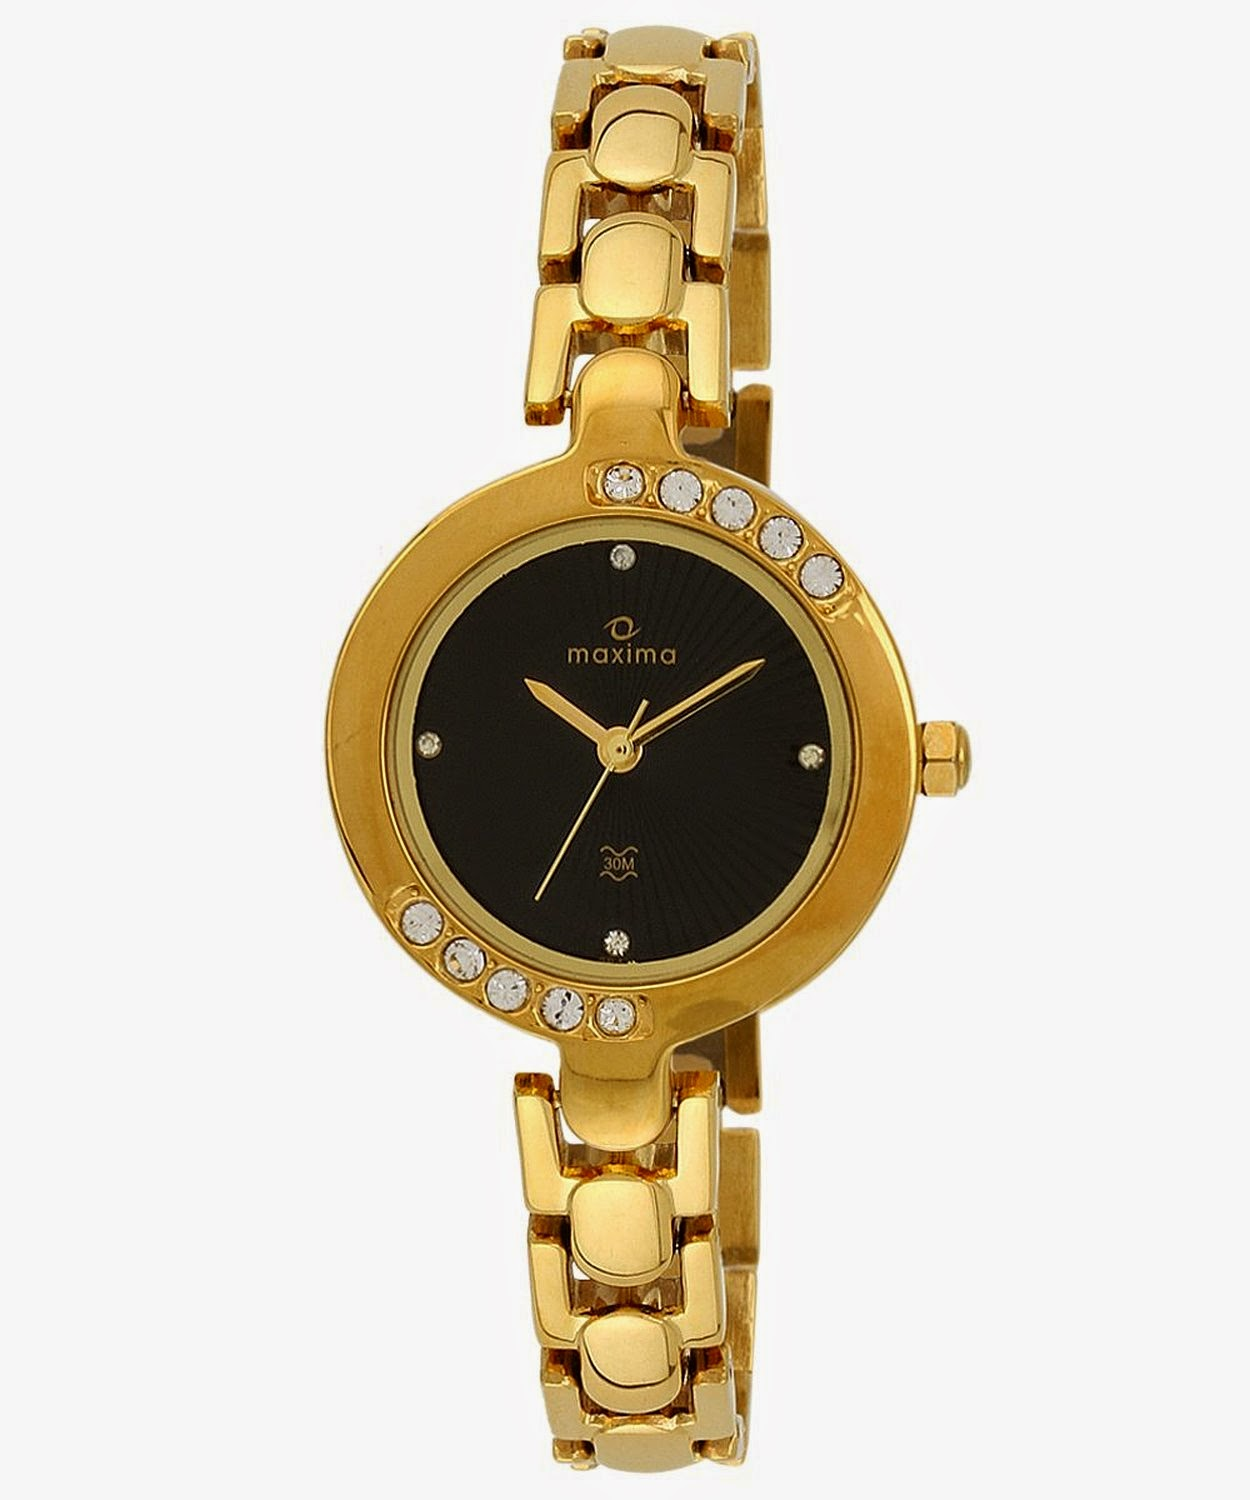 Buy Maxima Swarovski Gold Analog Black Dial Women's Watch for Rs.899 at Amazon.